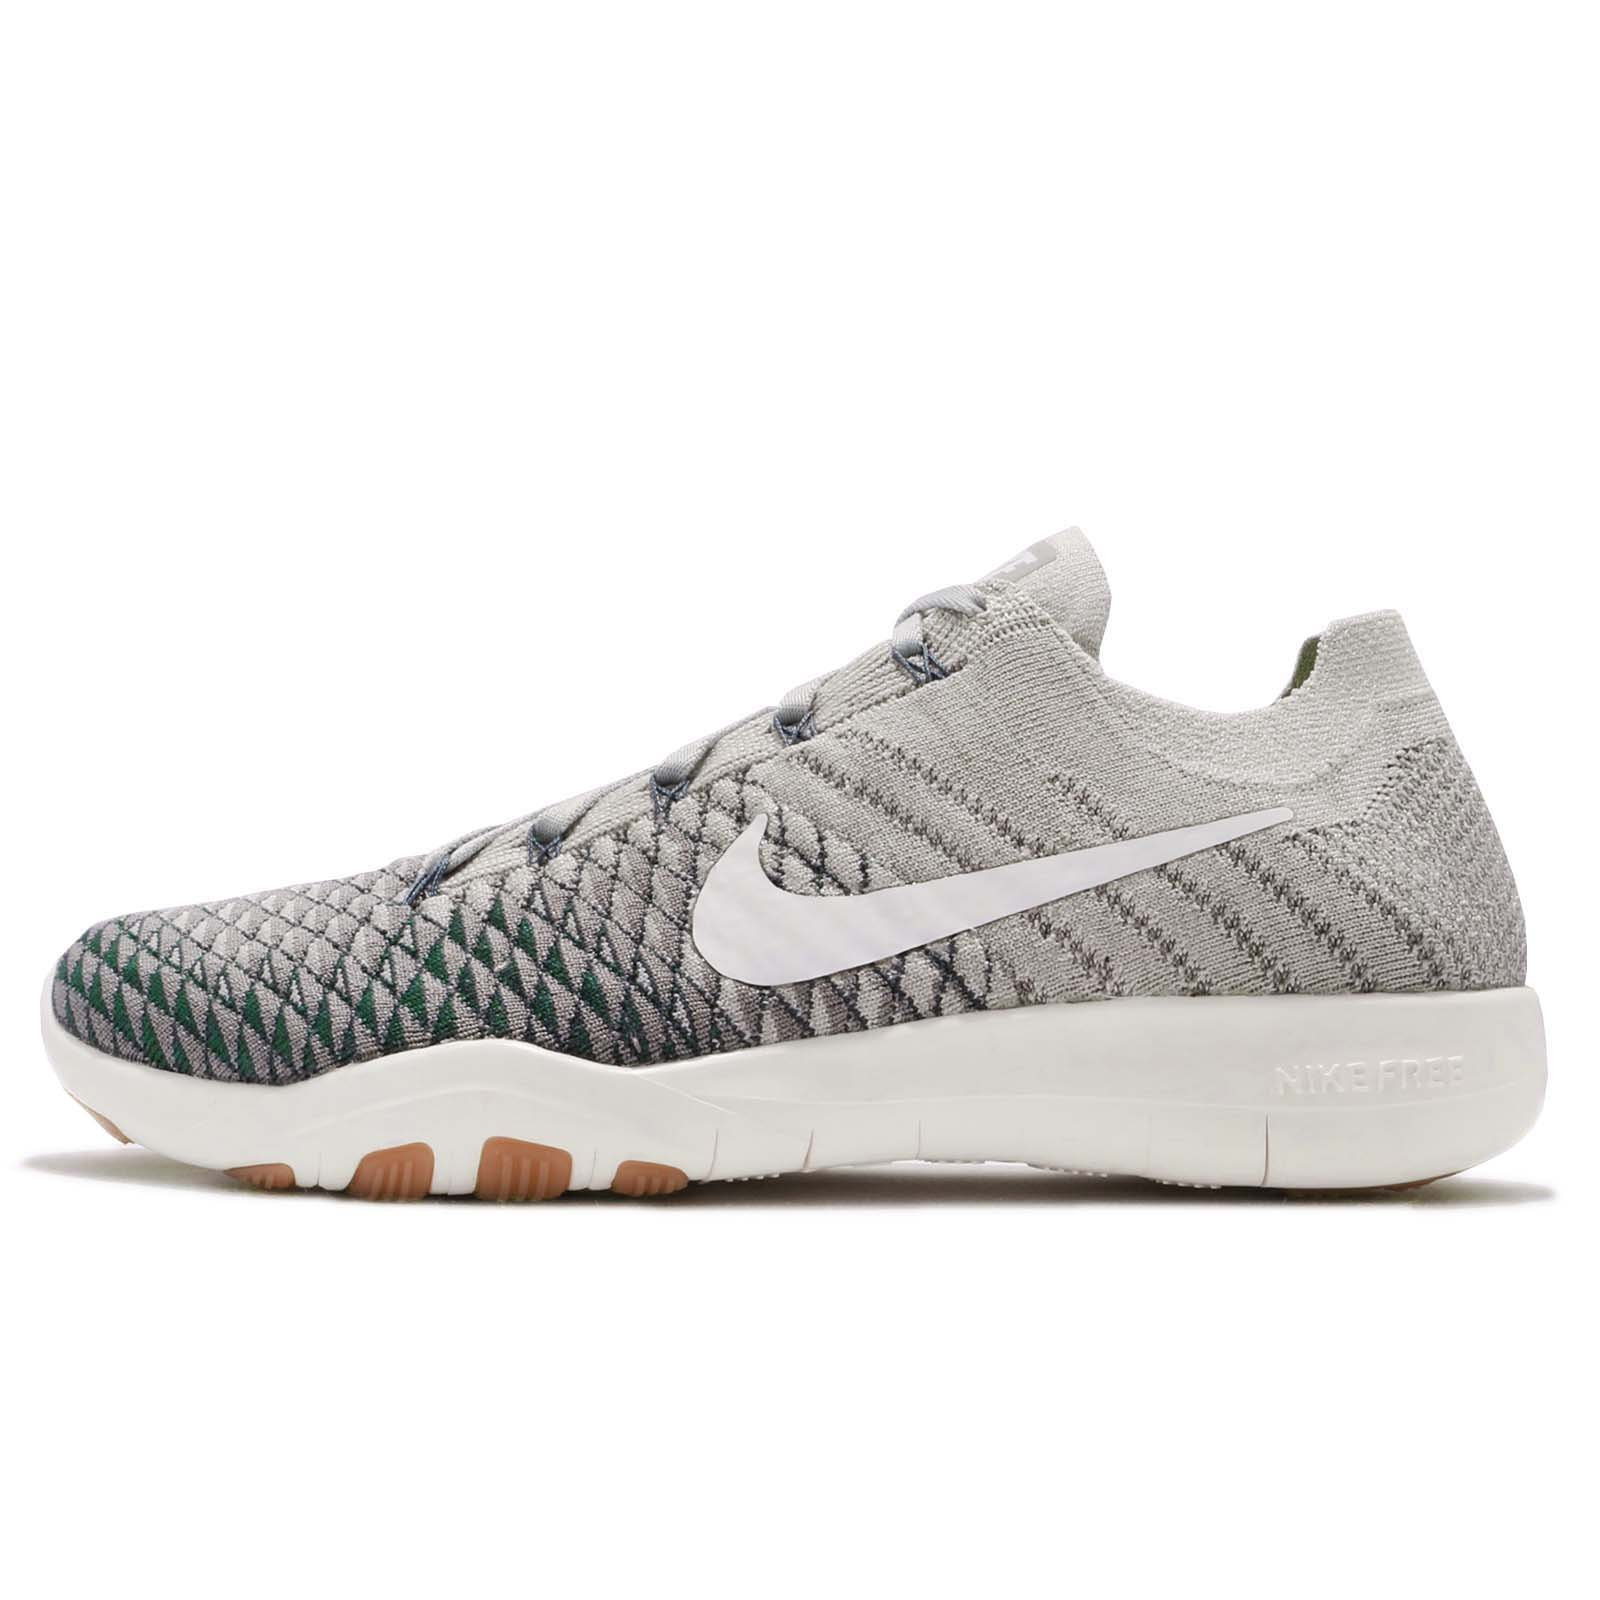 1caccc6af90c1 Galleon - NIKE Womens Free TR Flyknit 2 Pale Grey Light Charcoal Vintage  Green Nylon Running Shoes 8.5 B US